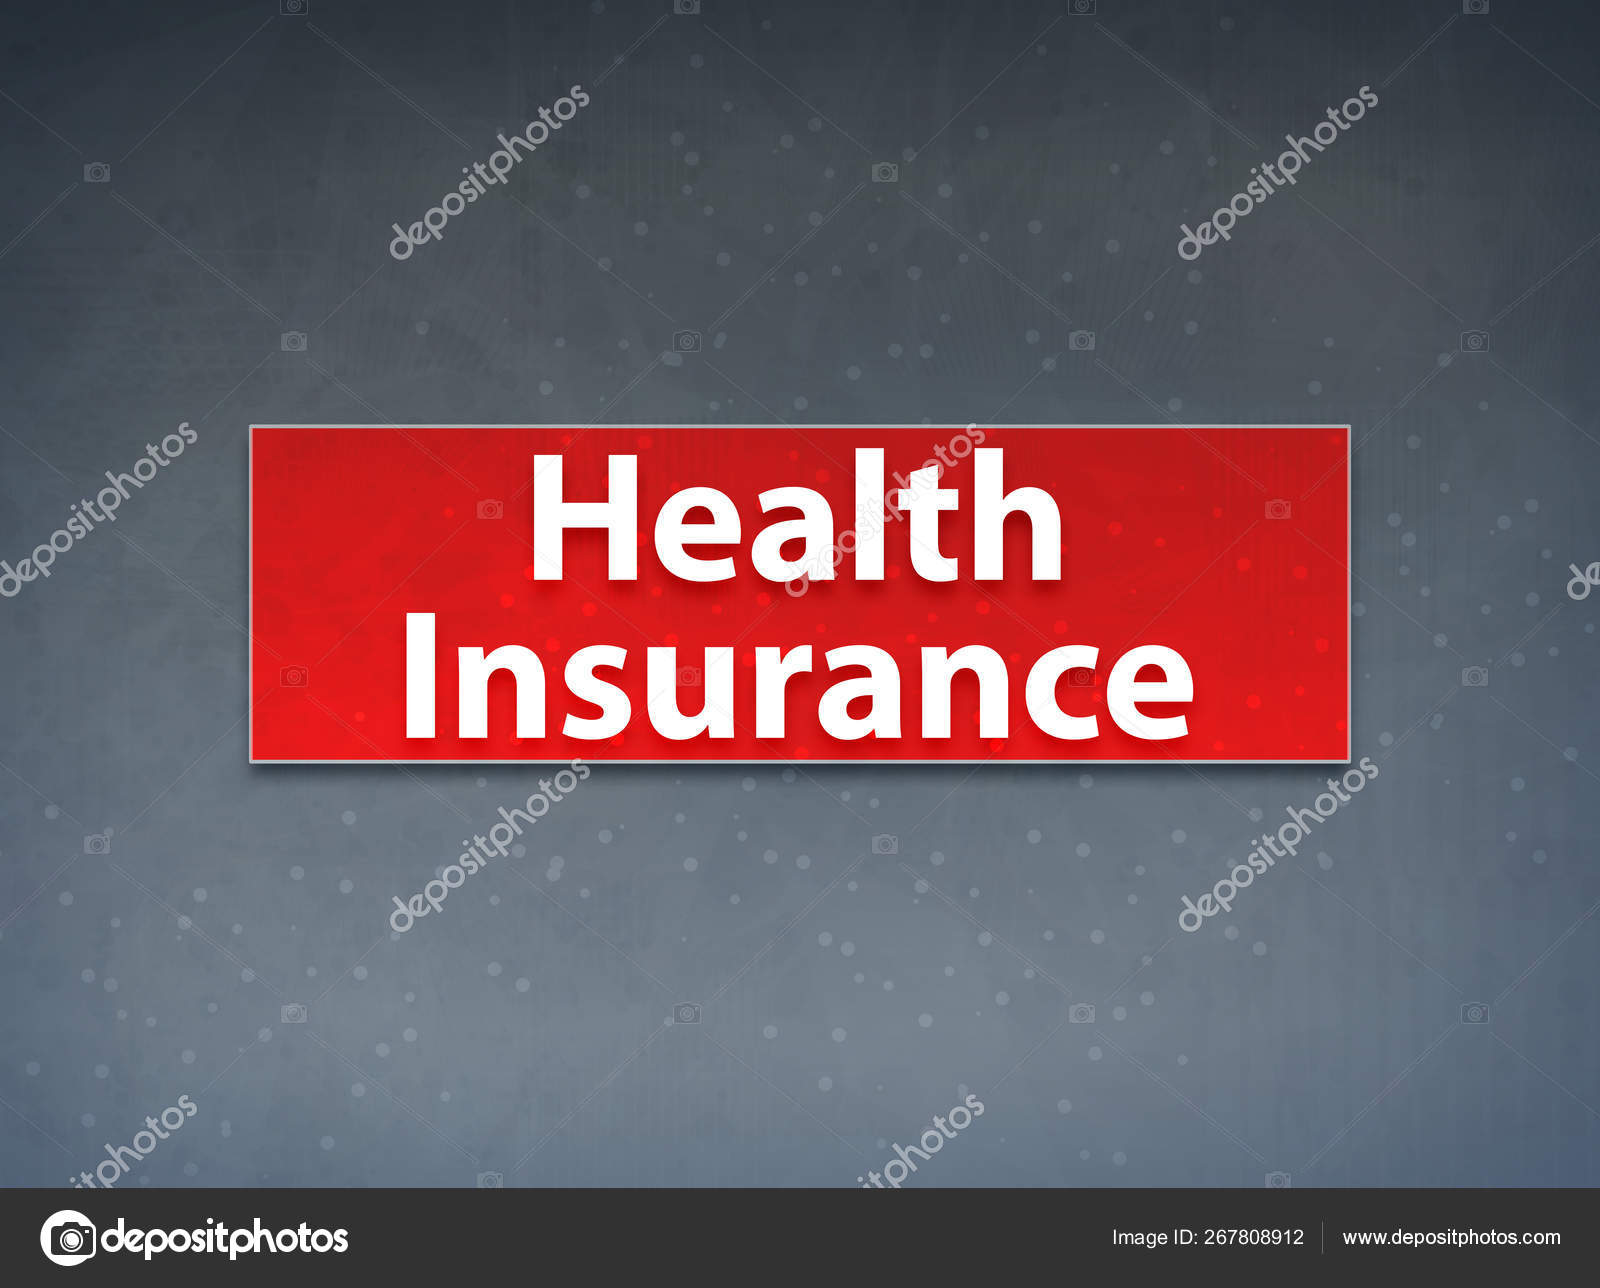 Health Insurance Red Banner Abstract Background Stock Photo C Bluejay18 267808912